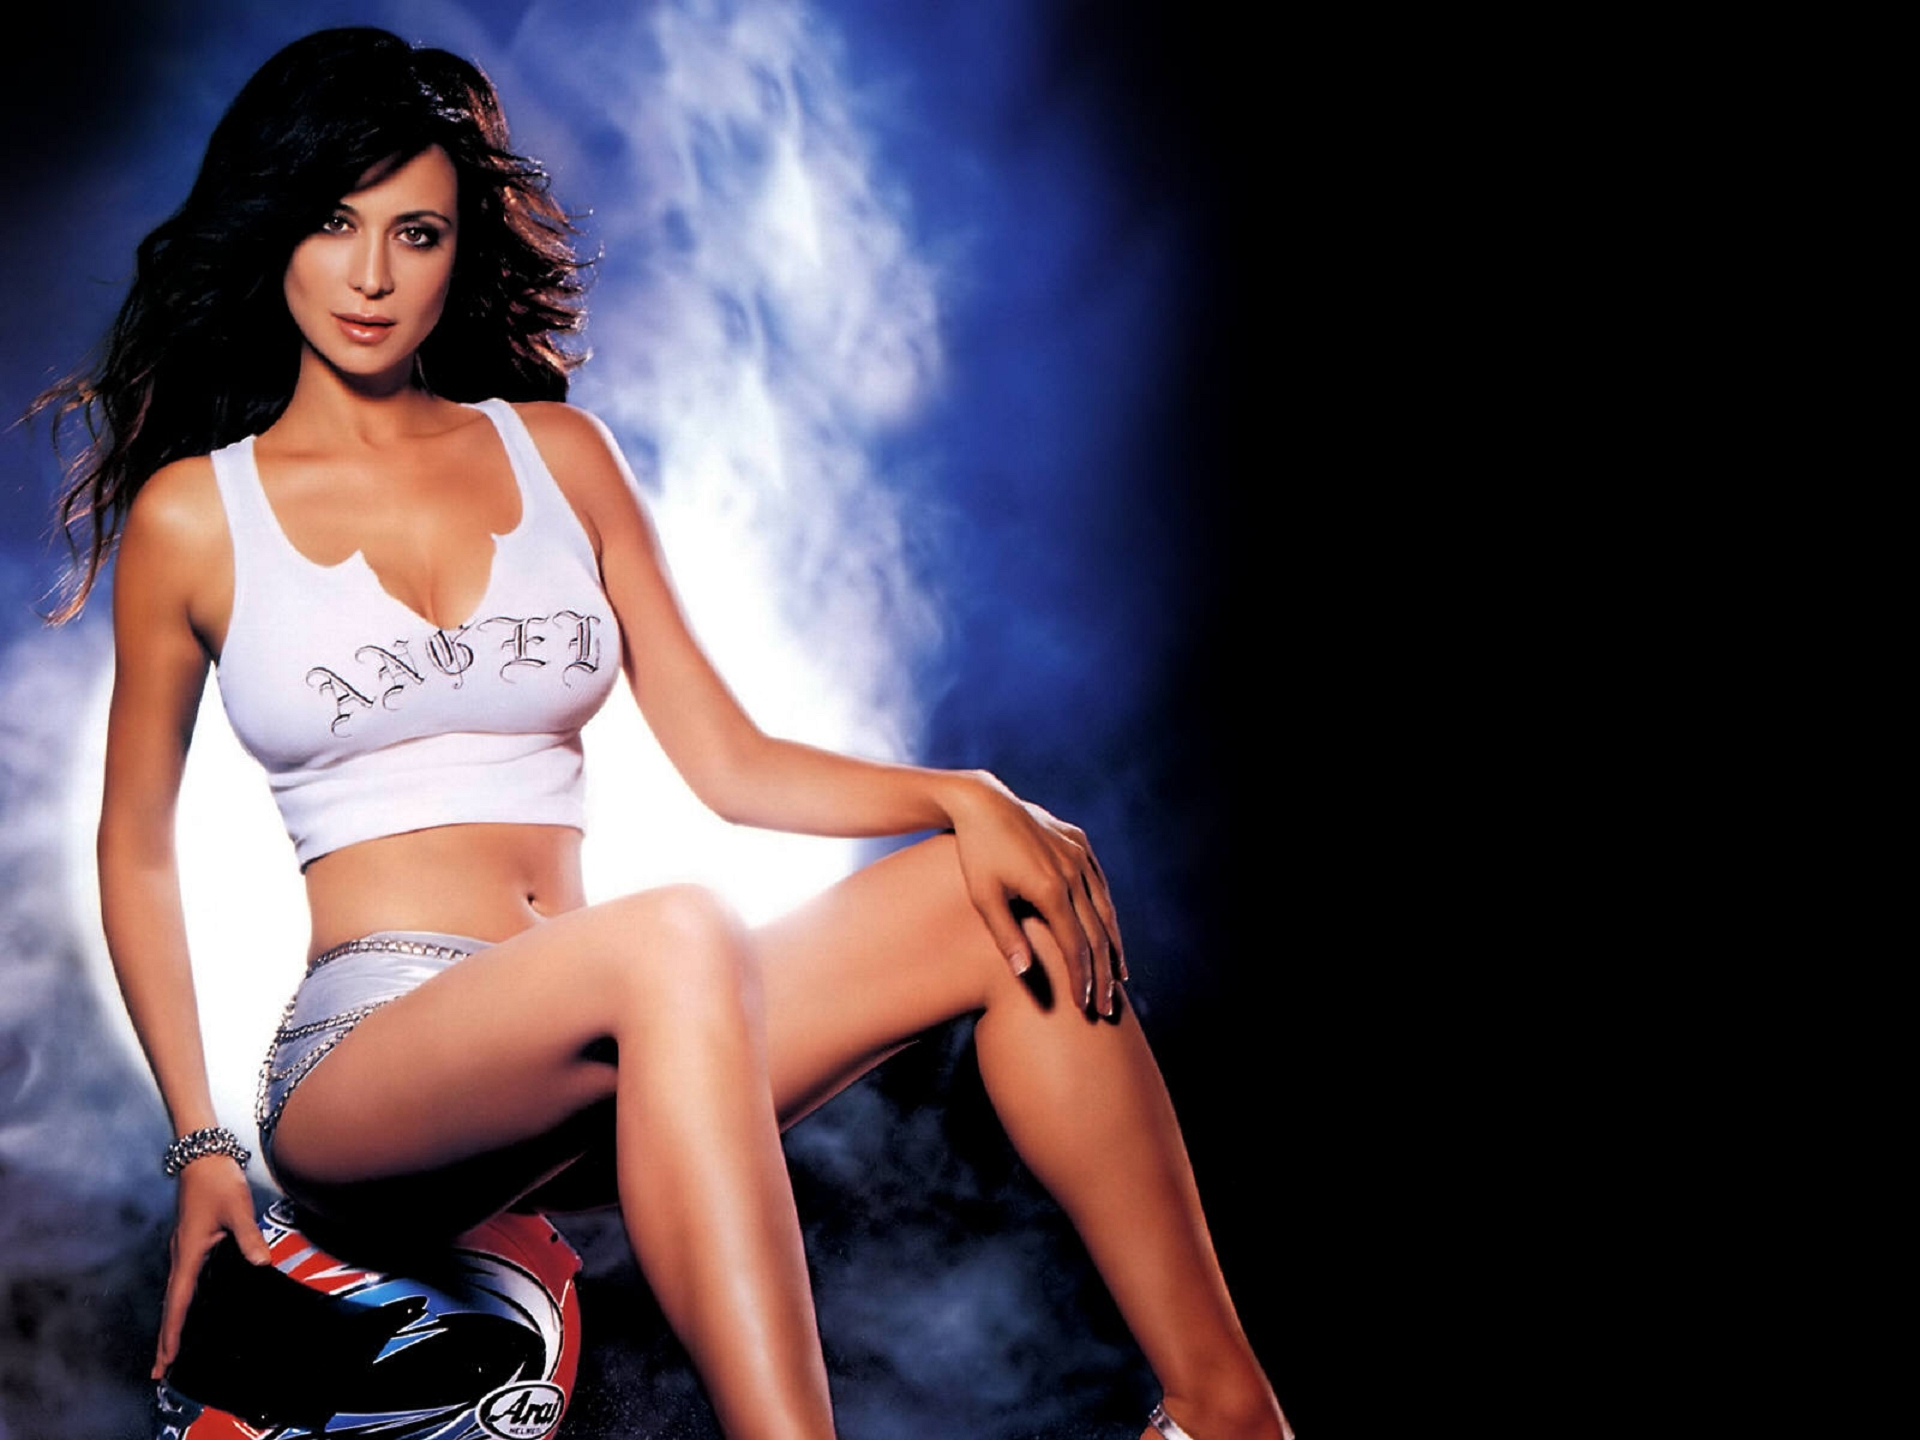 Catherine bell on howard stern show 8